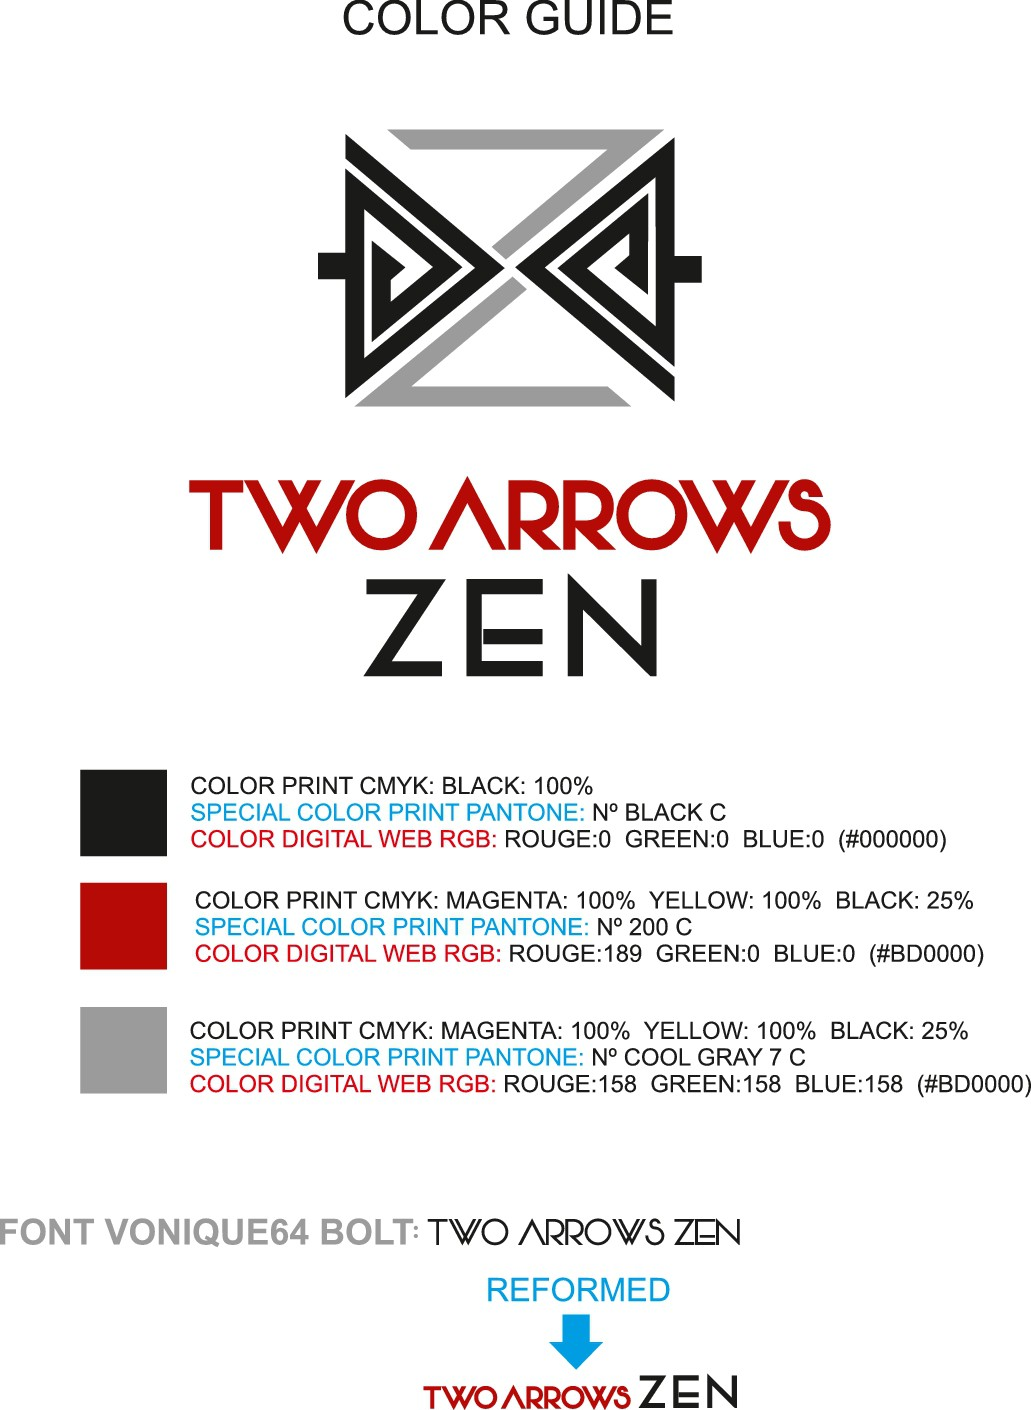 Artistic Arrowheads Meeting in the Air for Two Arrows Zen